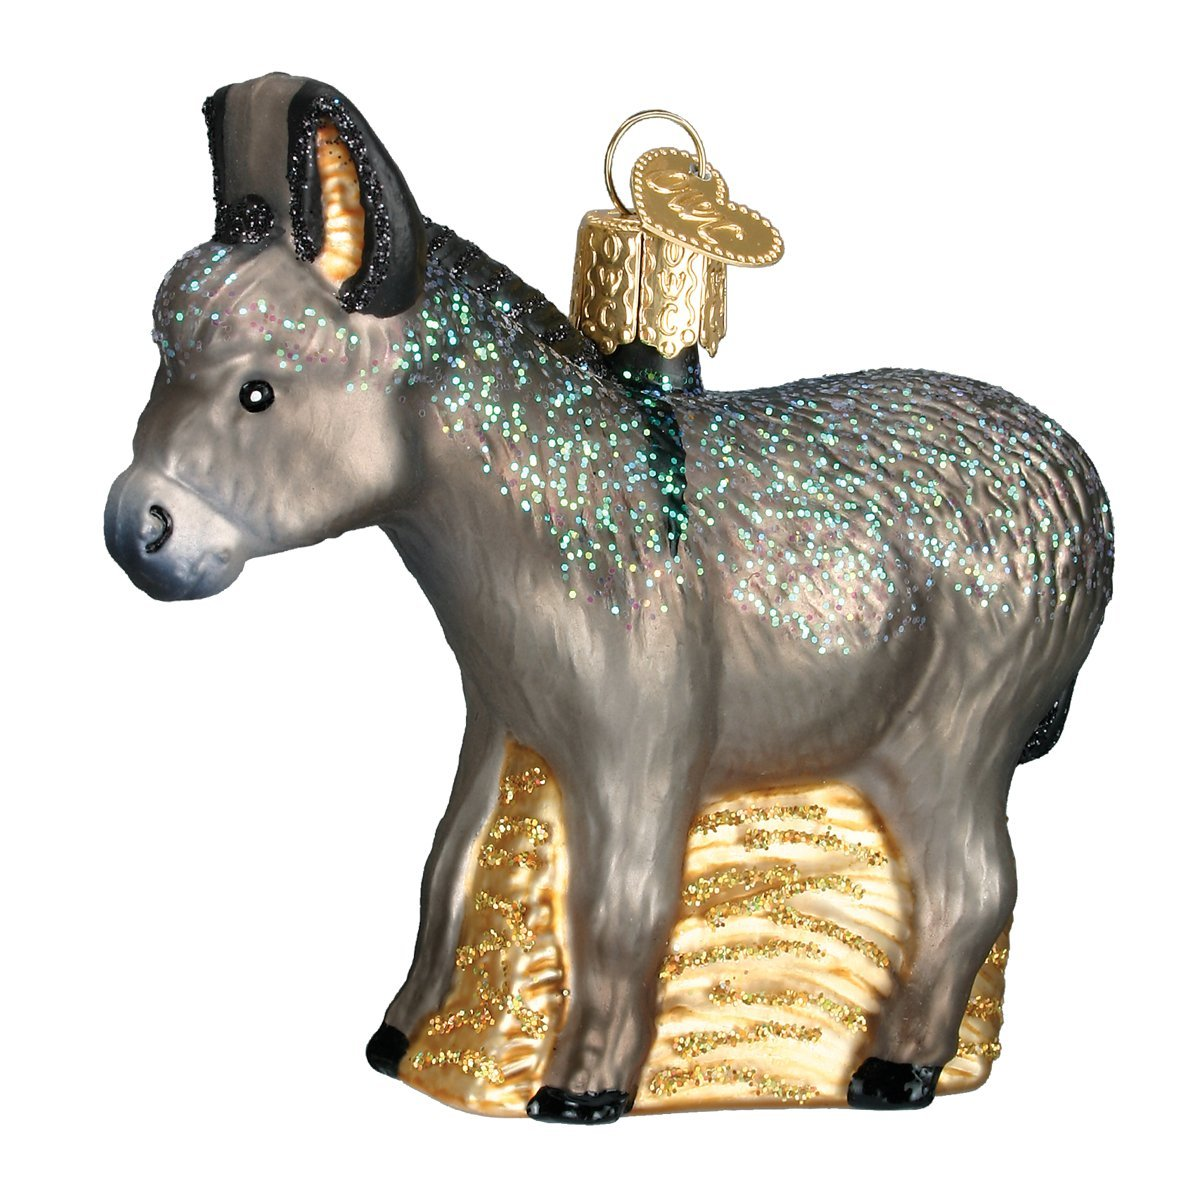 Old World Christmas Ornaments: Donkey Glass Blown Ornaments for Christmas Tree